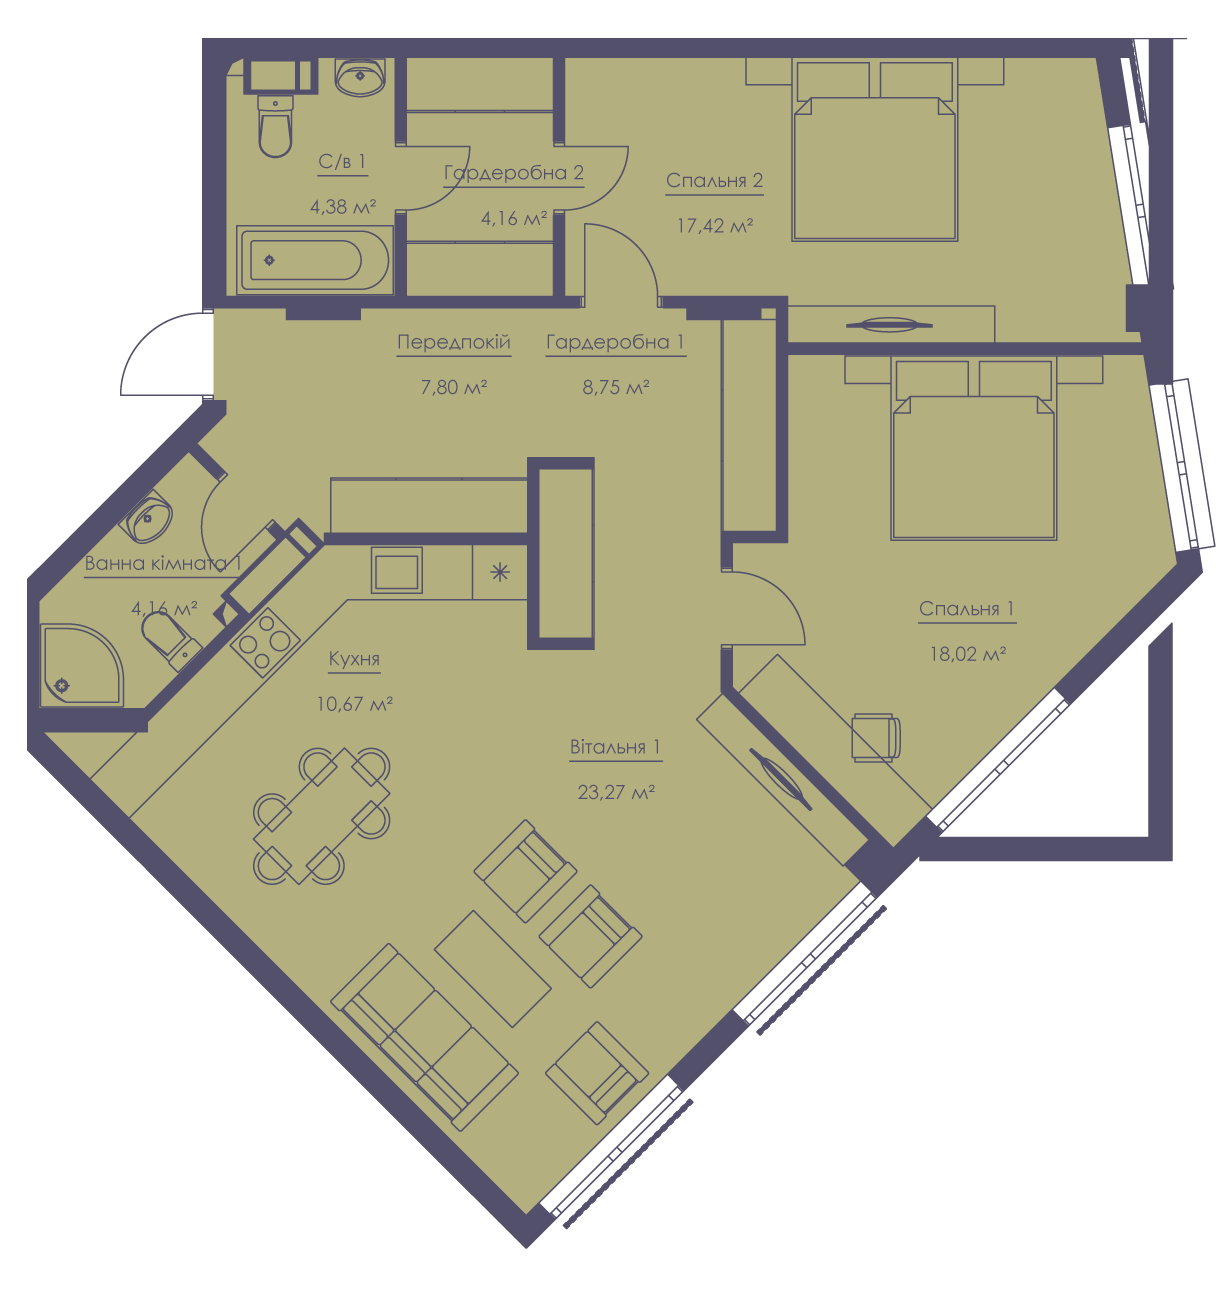 Apartment layout KV_79_3a_1_1_12-1